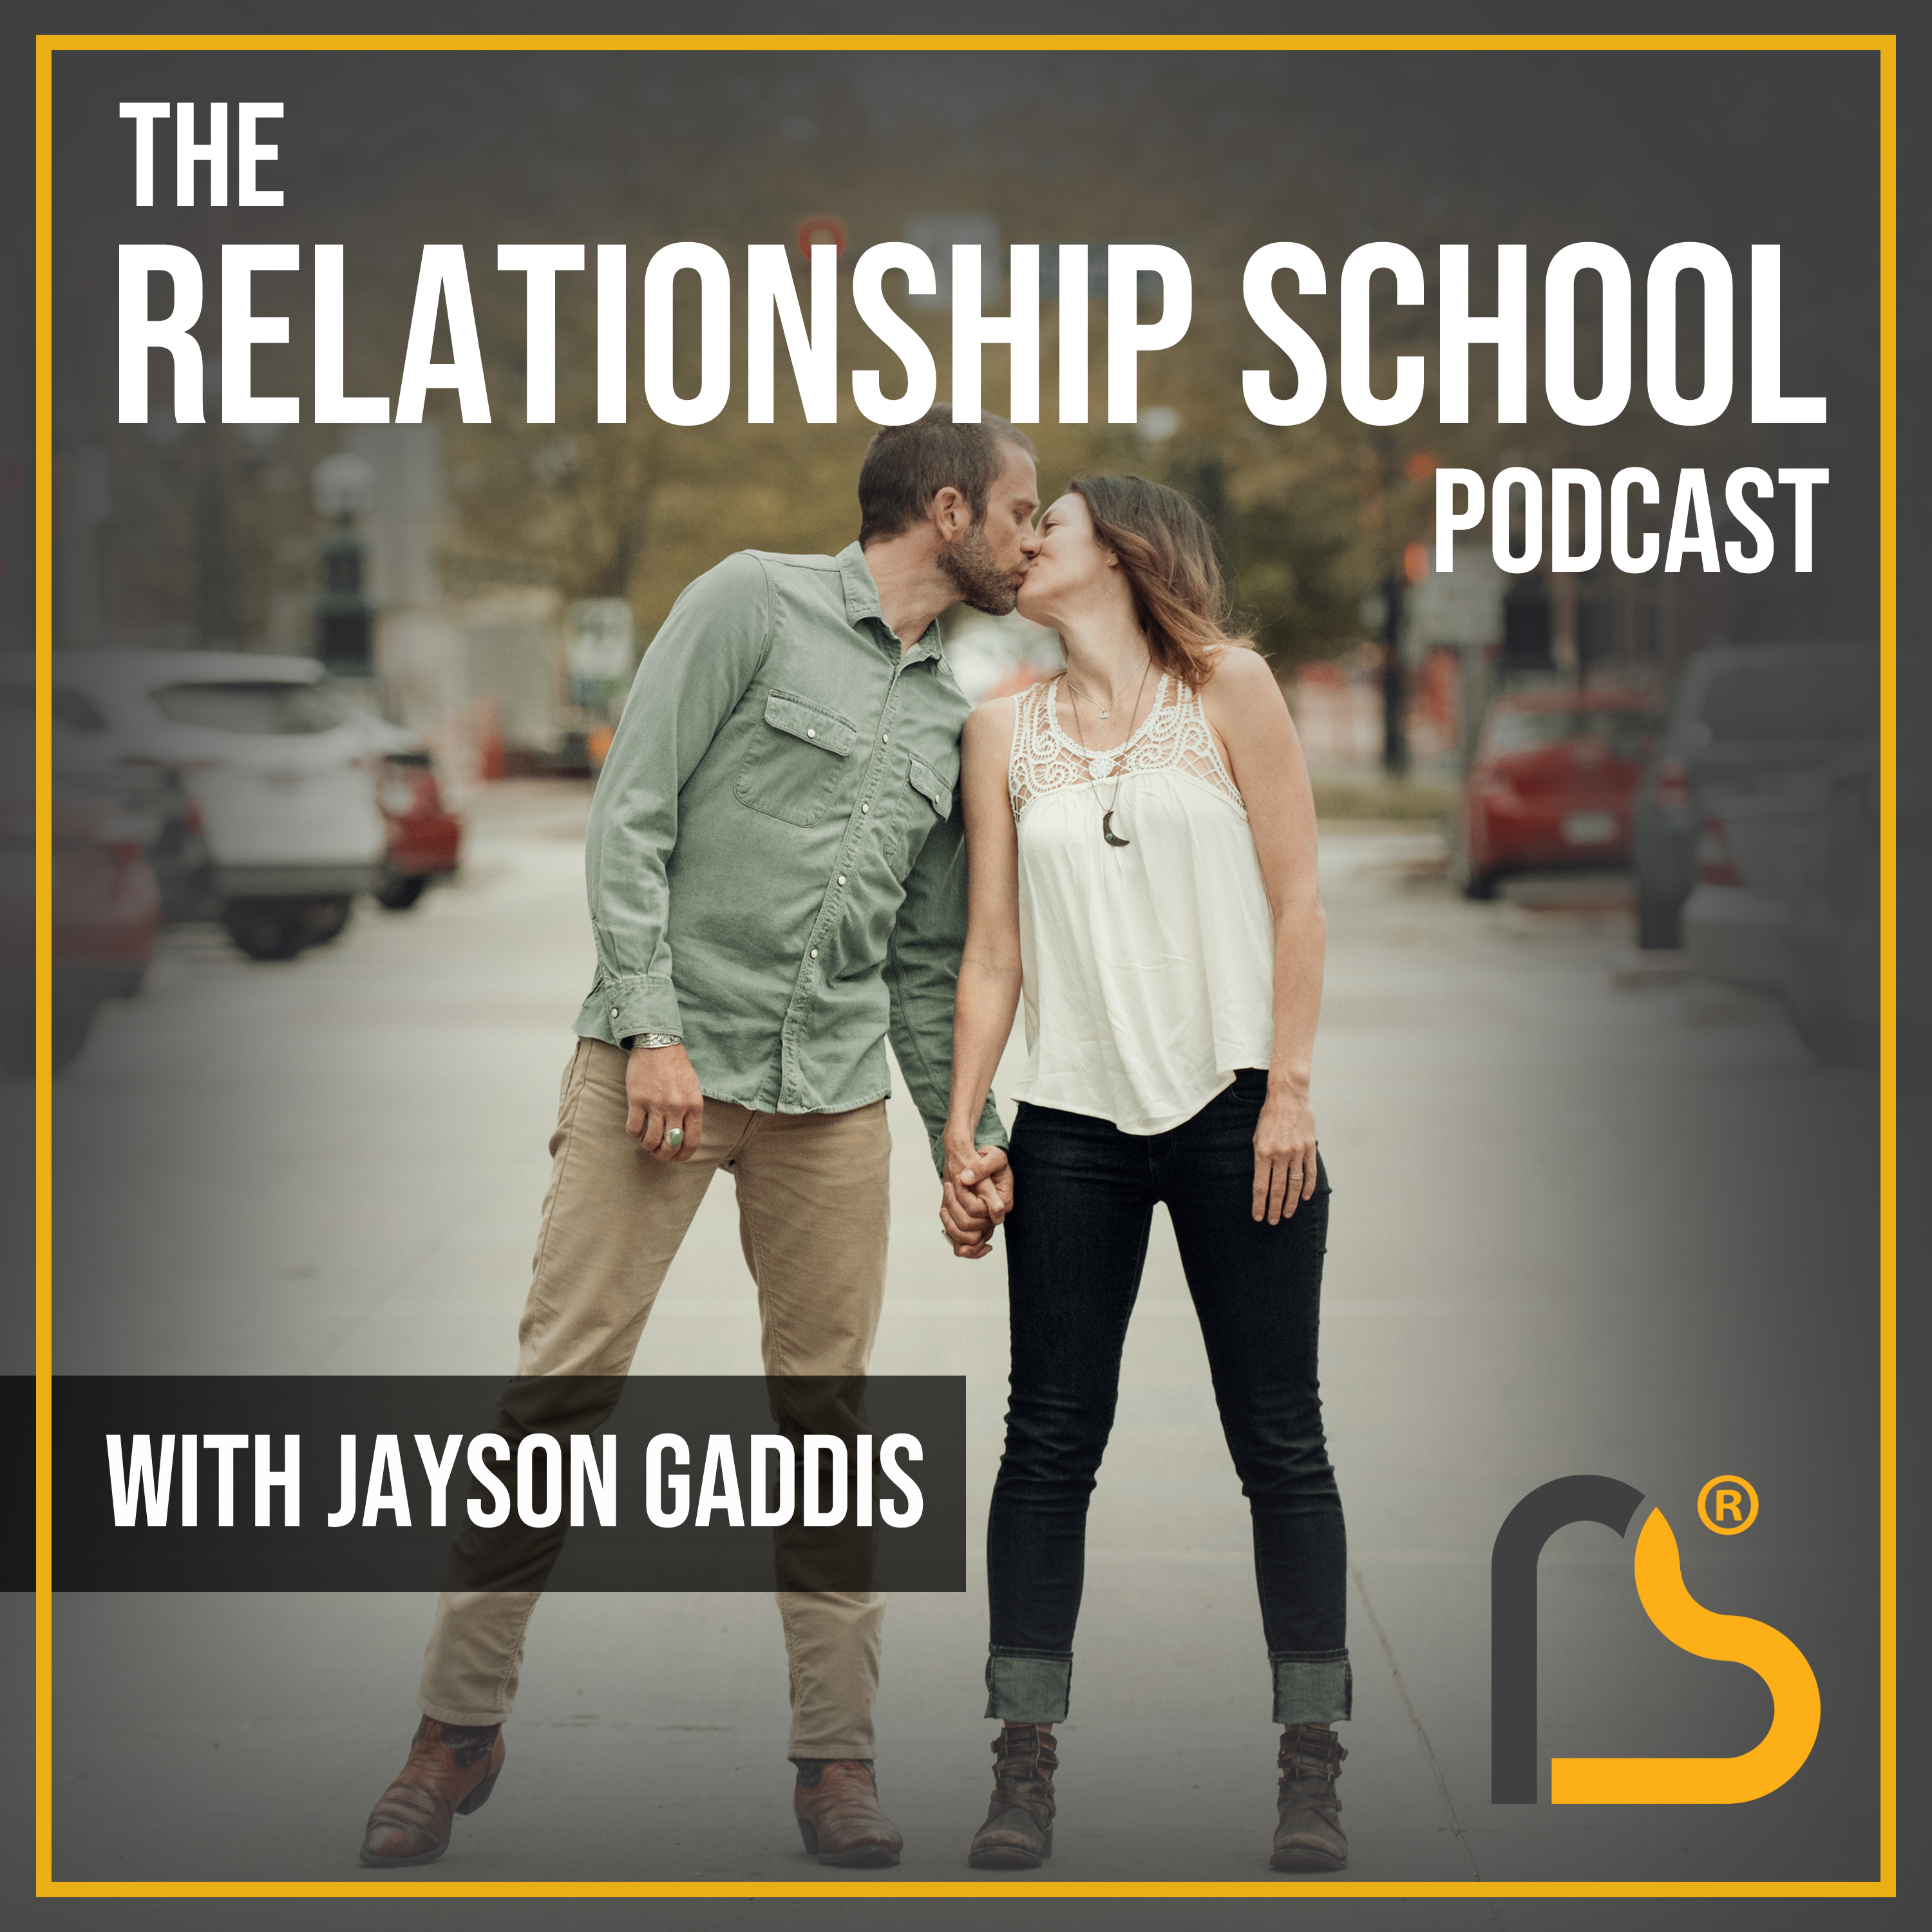 The Relationship School Podcast - Can You Fall In Love Too Fast? - Relationship School Podcast EPISODE 252